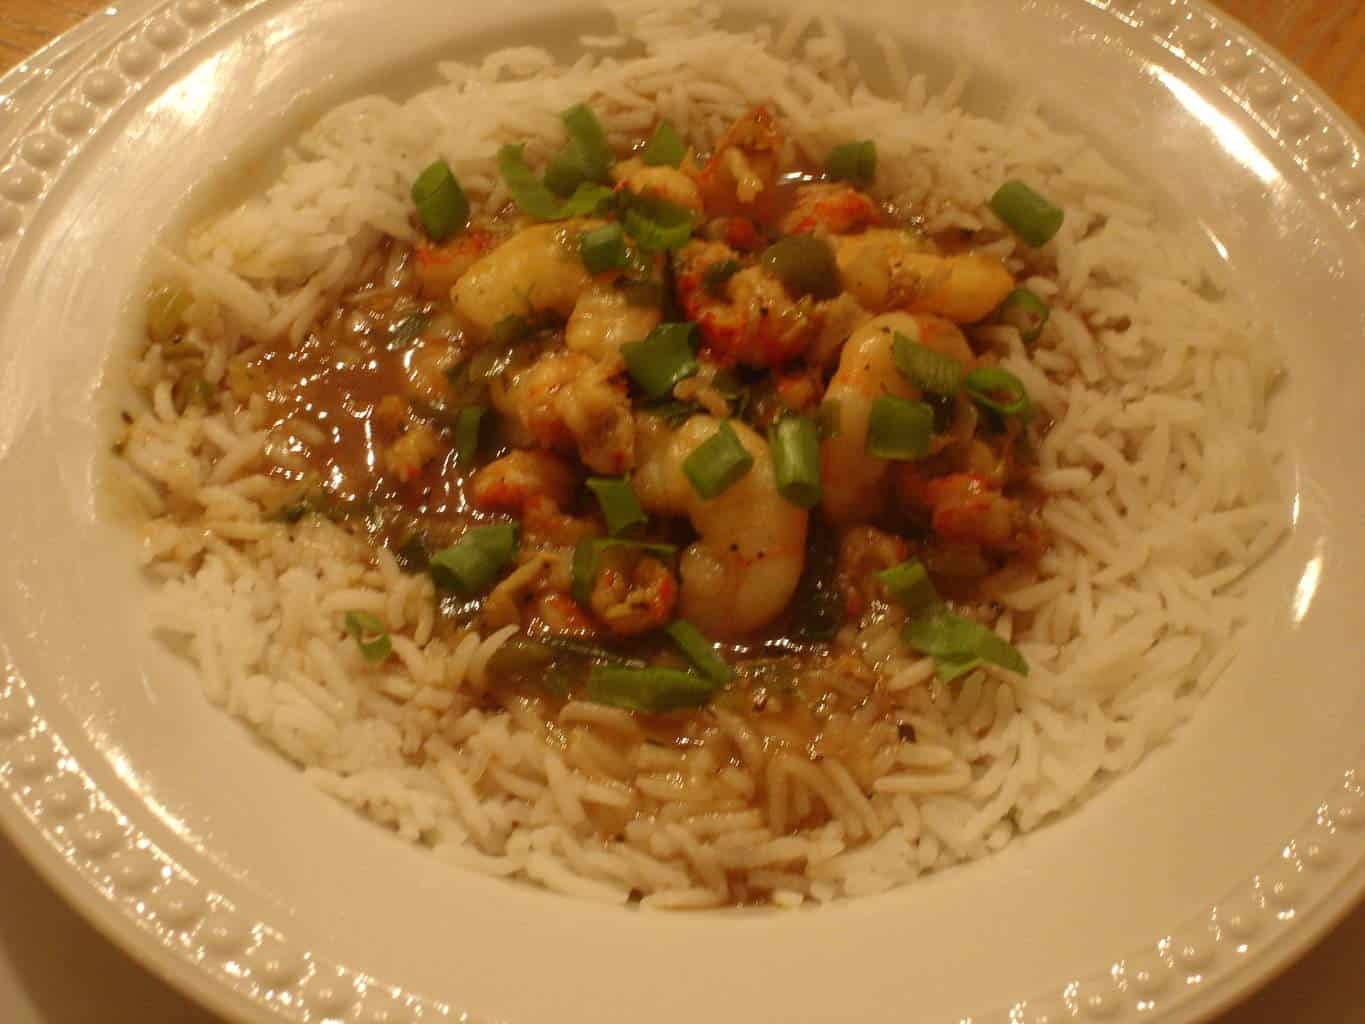 Shrimp and Crawfish Etouffee